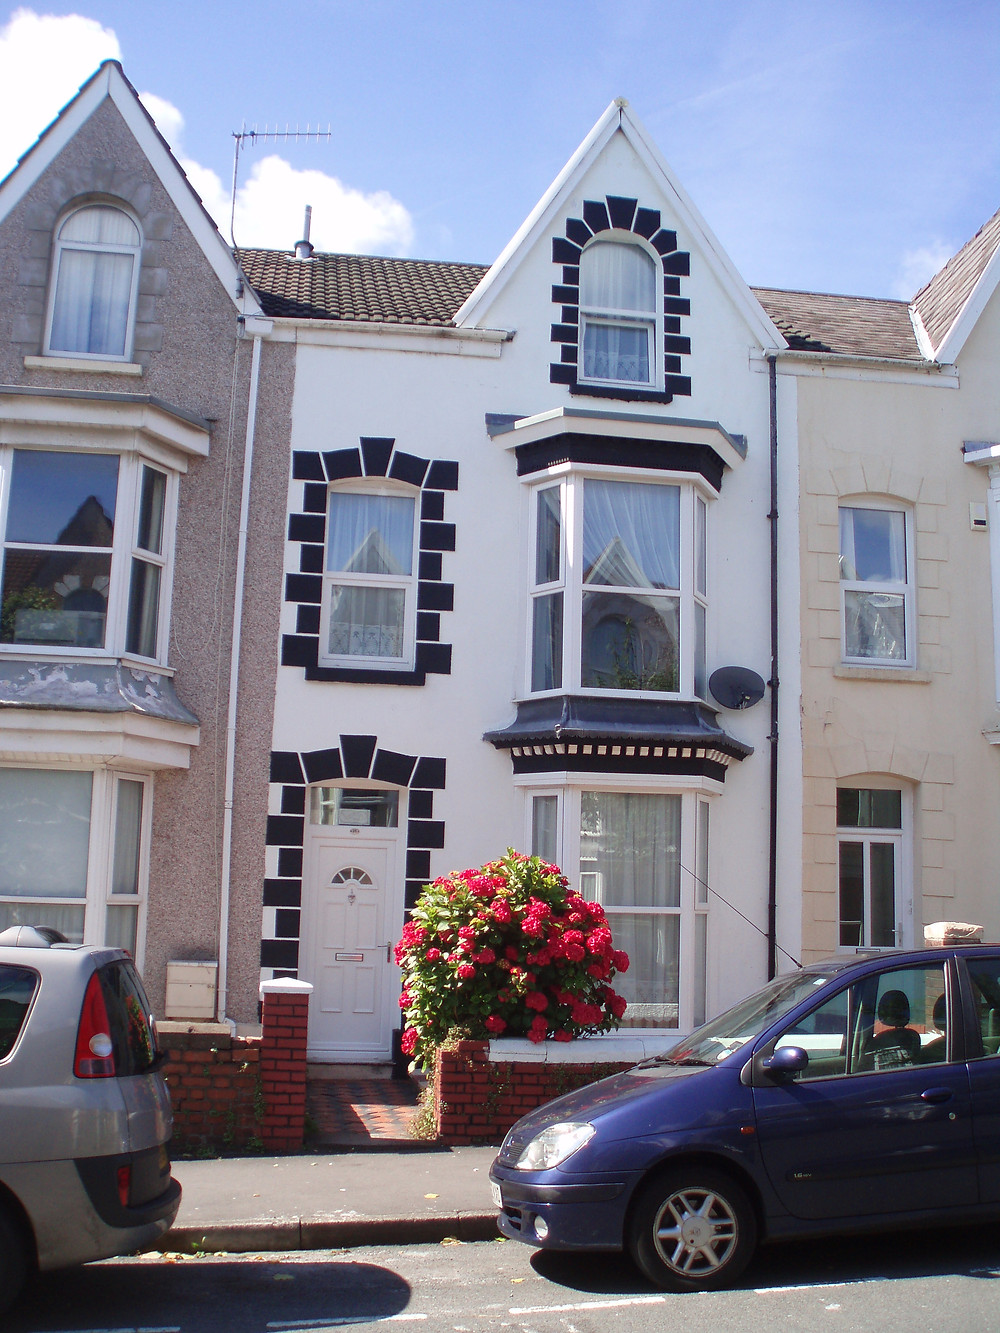 University Swansea Accommodation House Property lets digs